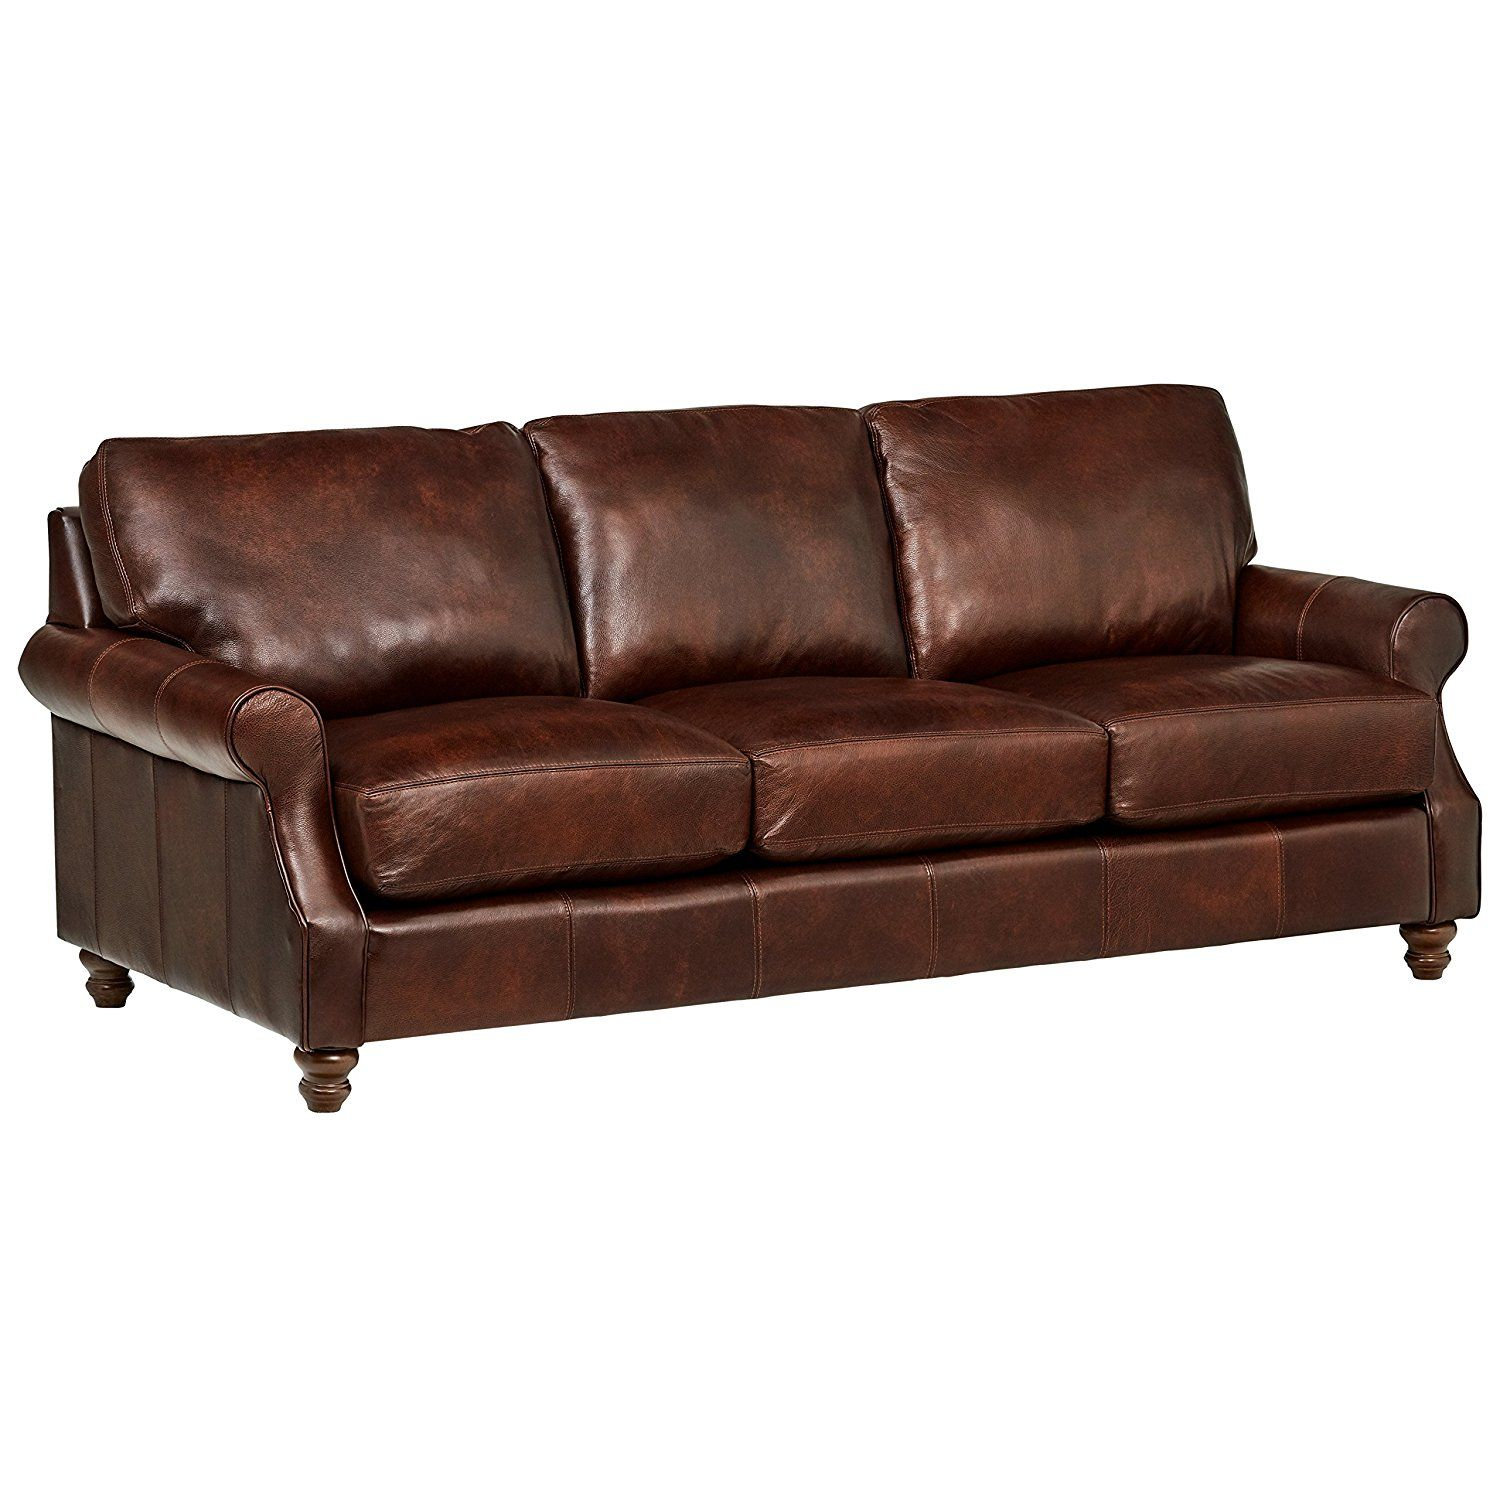 Exceptionnel 1 Stone U0026 Beam Charles Classic Oversized Leather Sofa